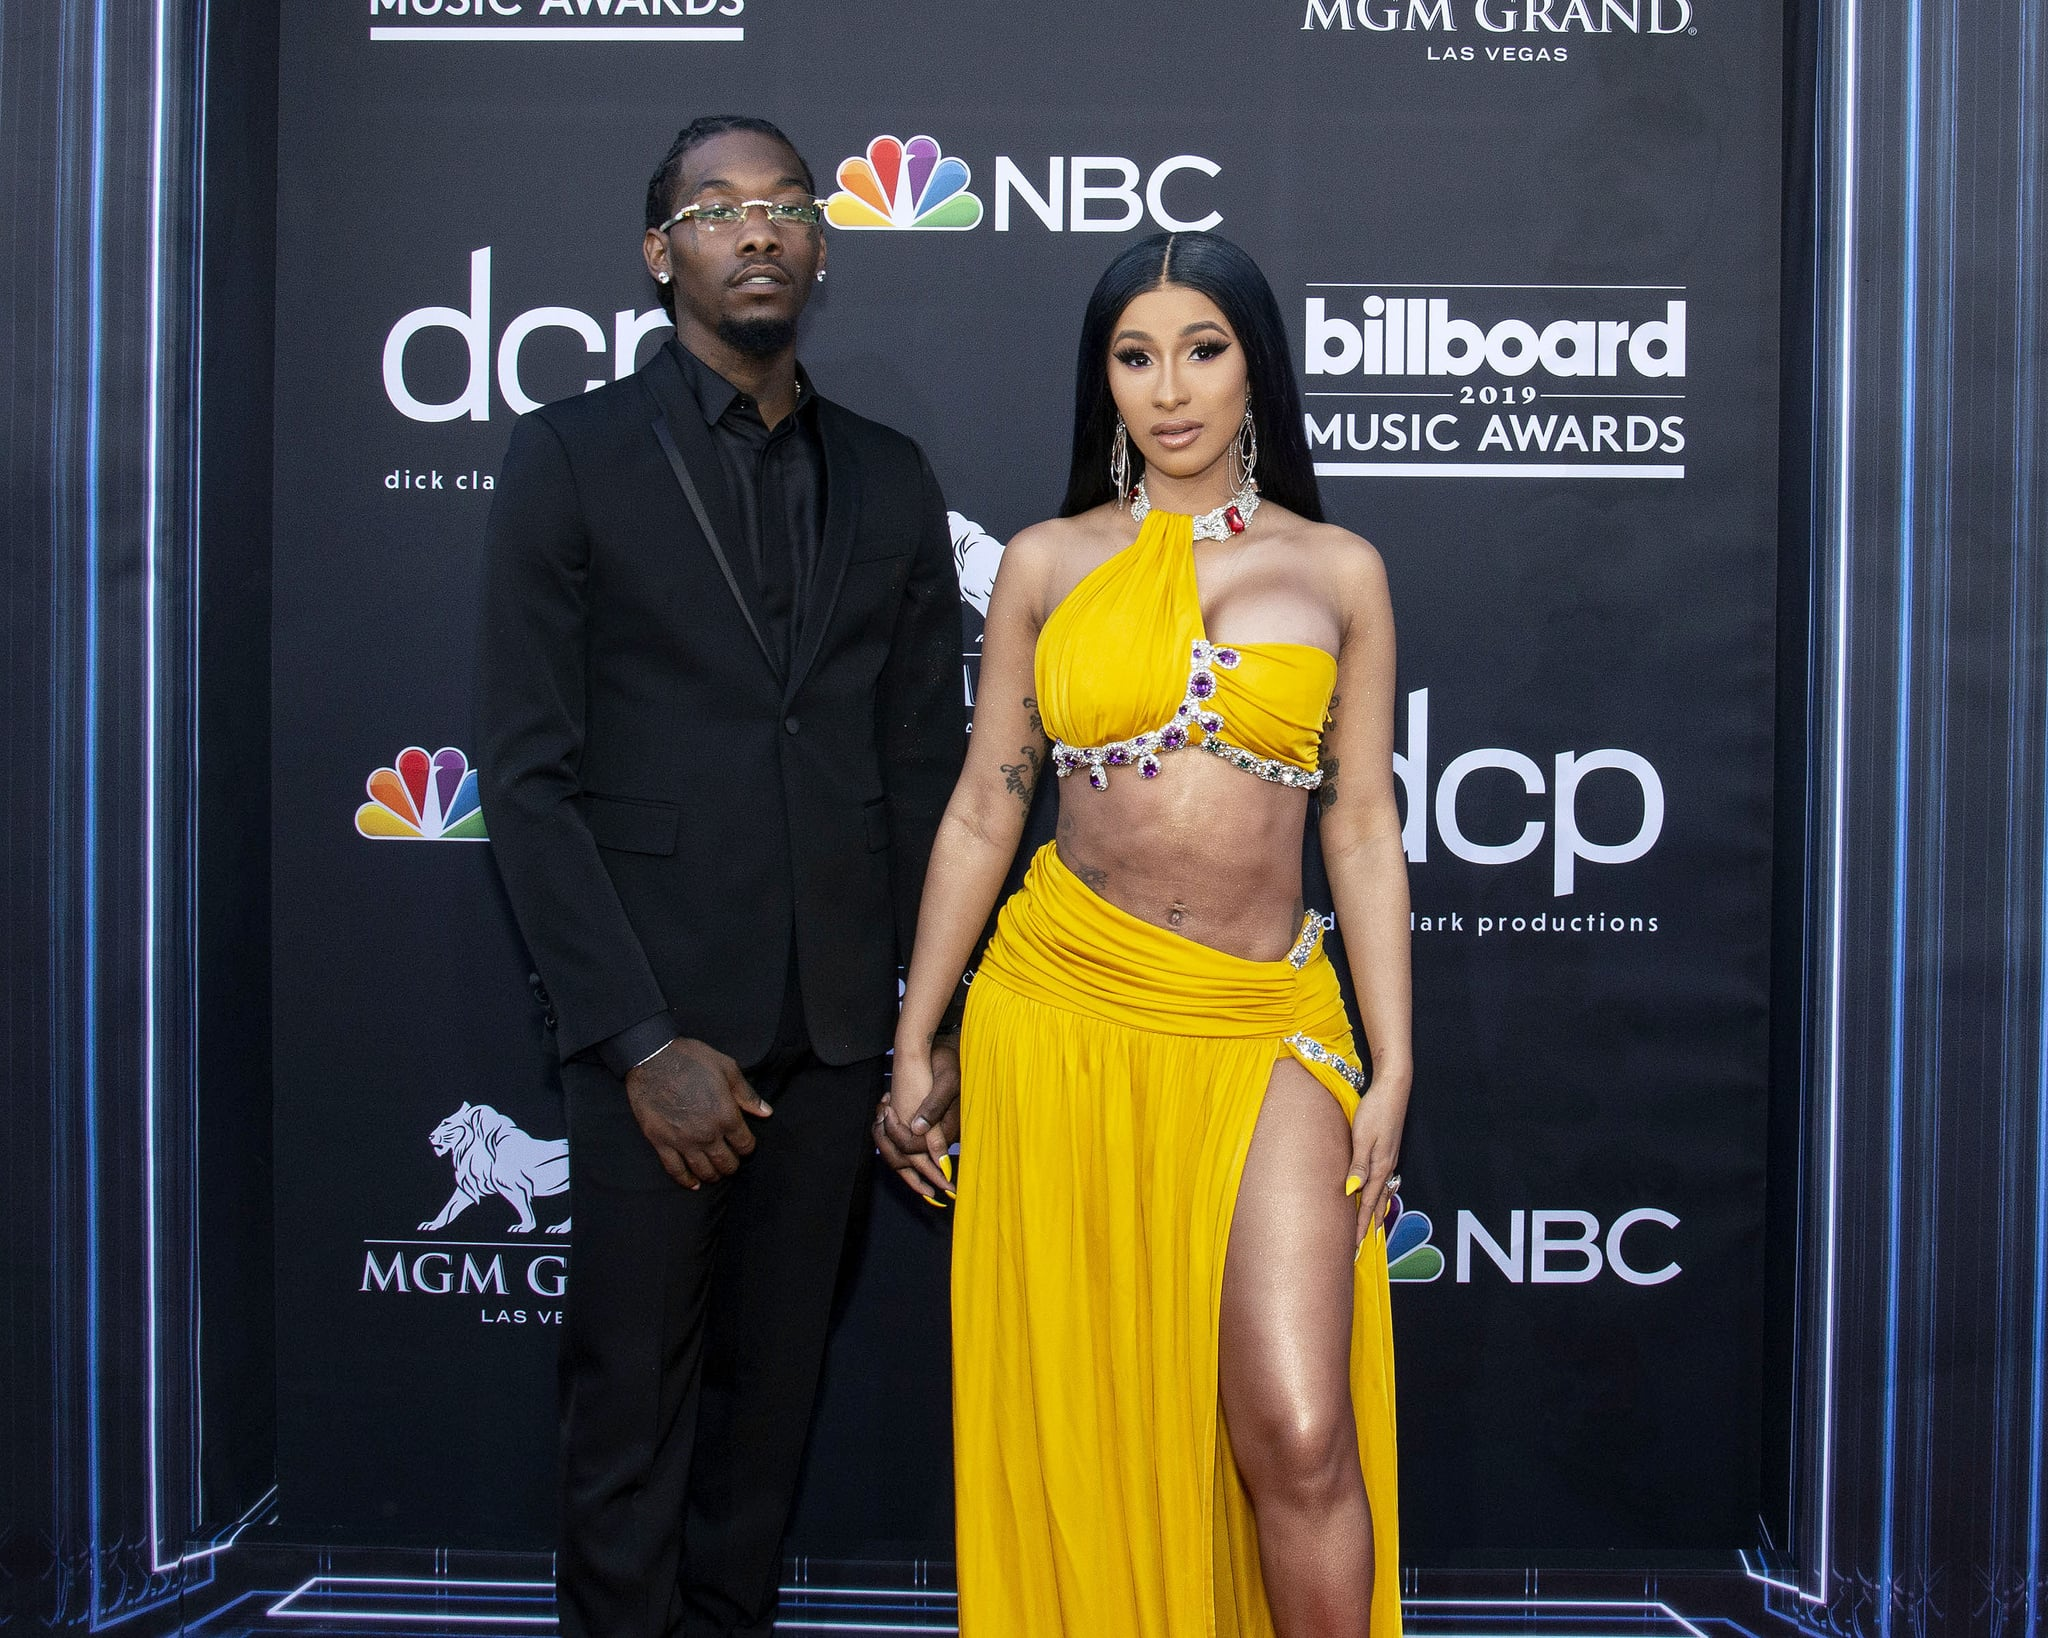 LAS VEGAS, NEVADA - MAY 01: Offset and Cardi B attend the 2019 Billboard Music Award at MGM Grand Garden Arena on May 01, 2019 in Las Vegas, Nevada. (Photo by Daniel Torok/Patrick McMullan via Getty Images)